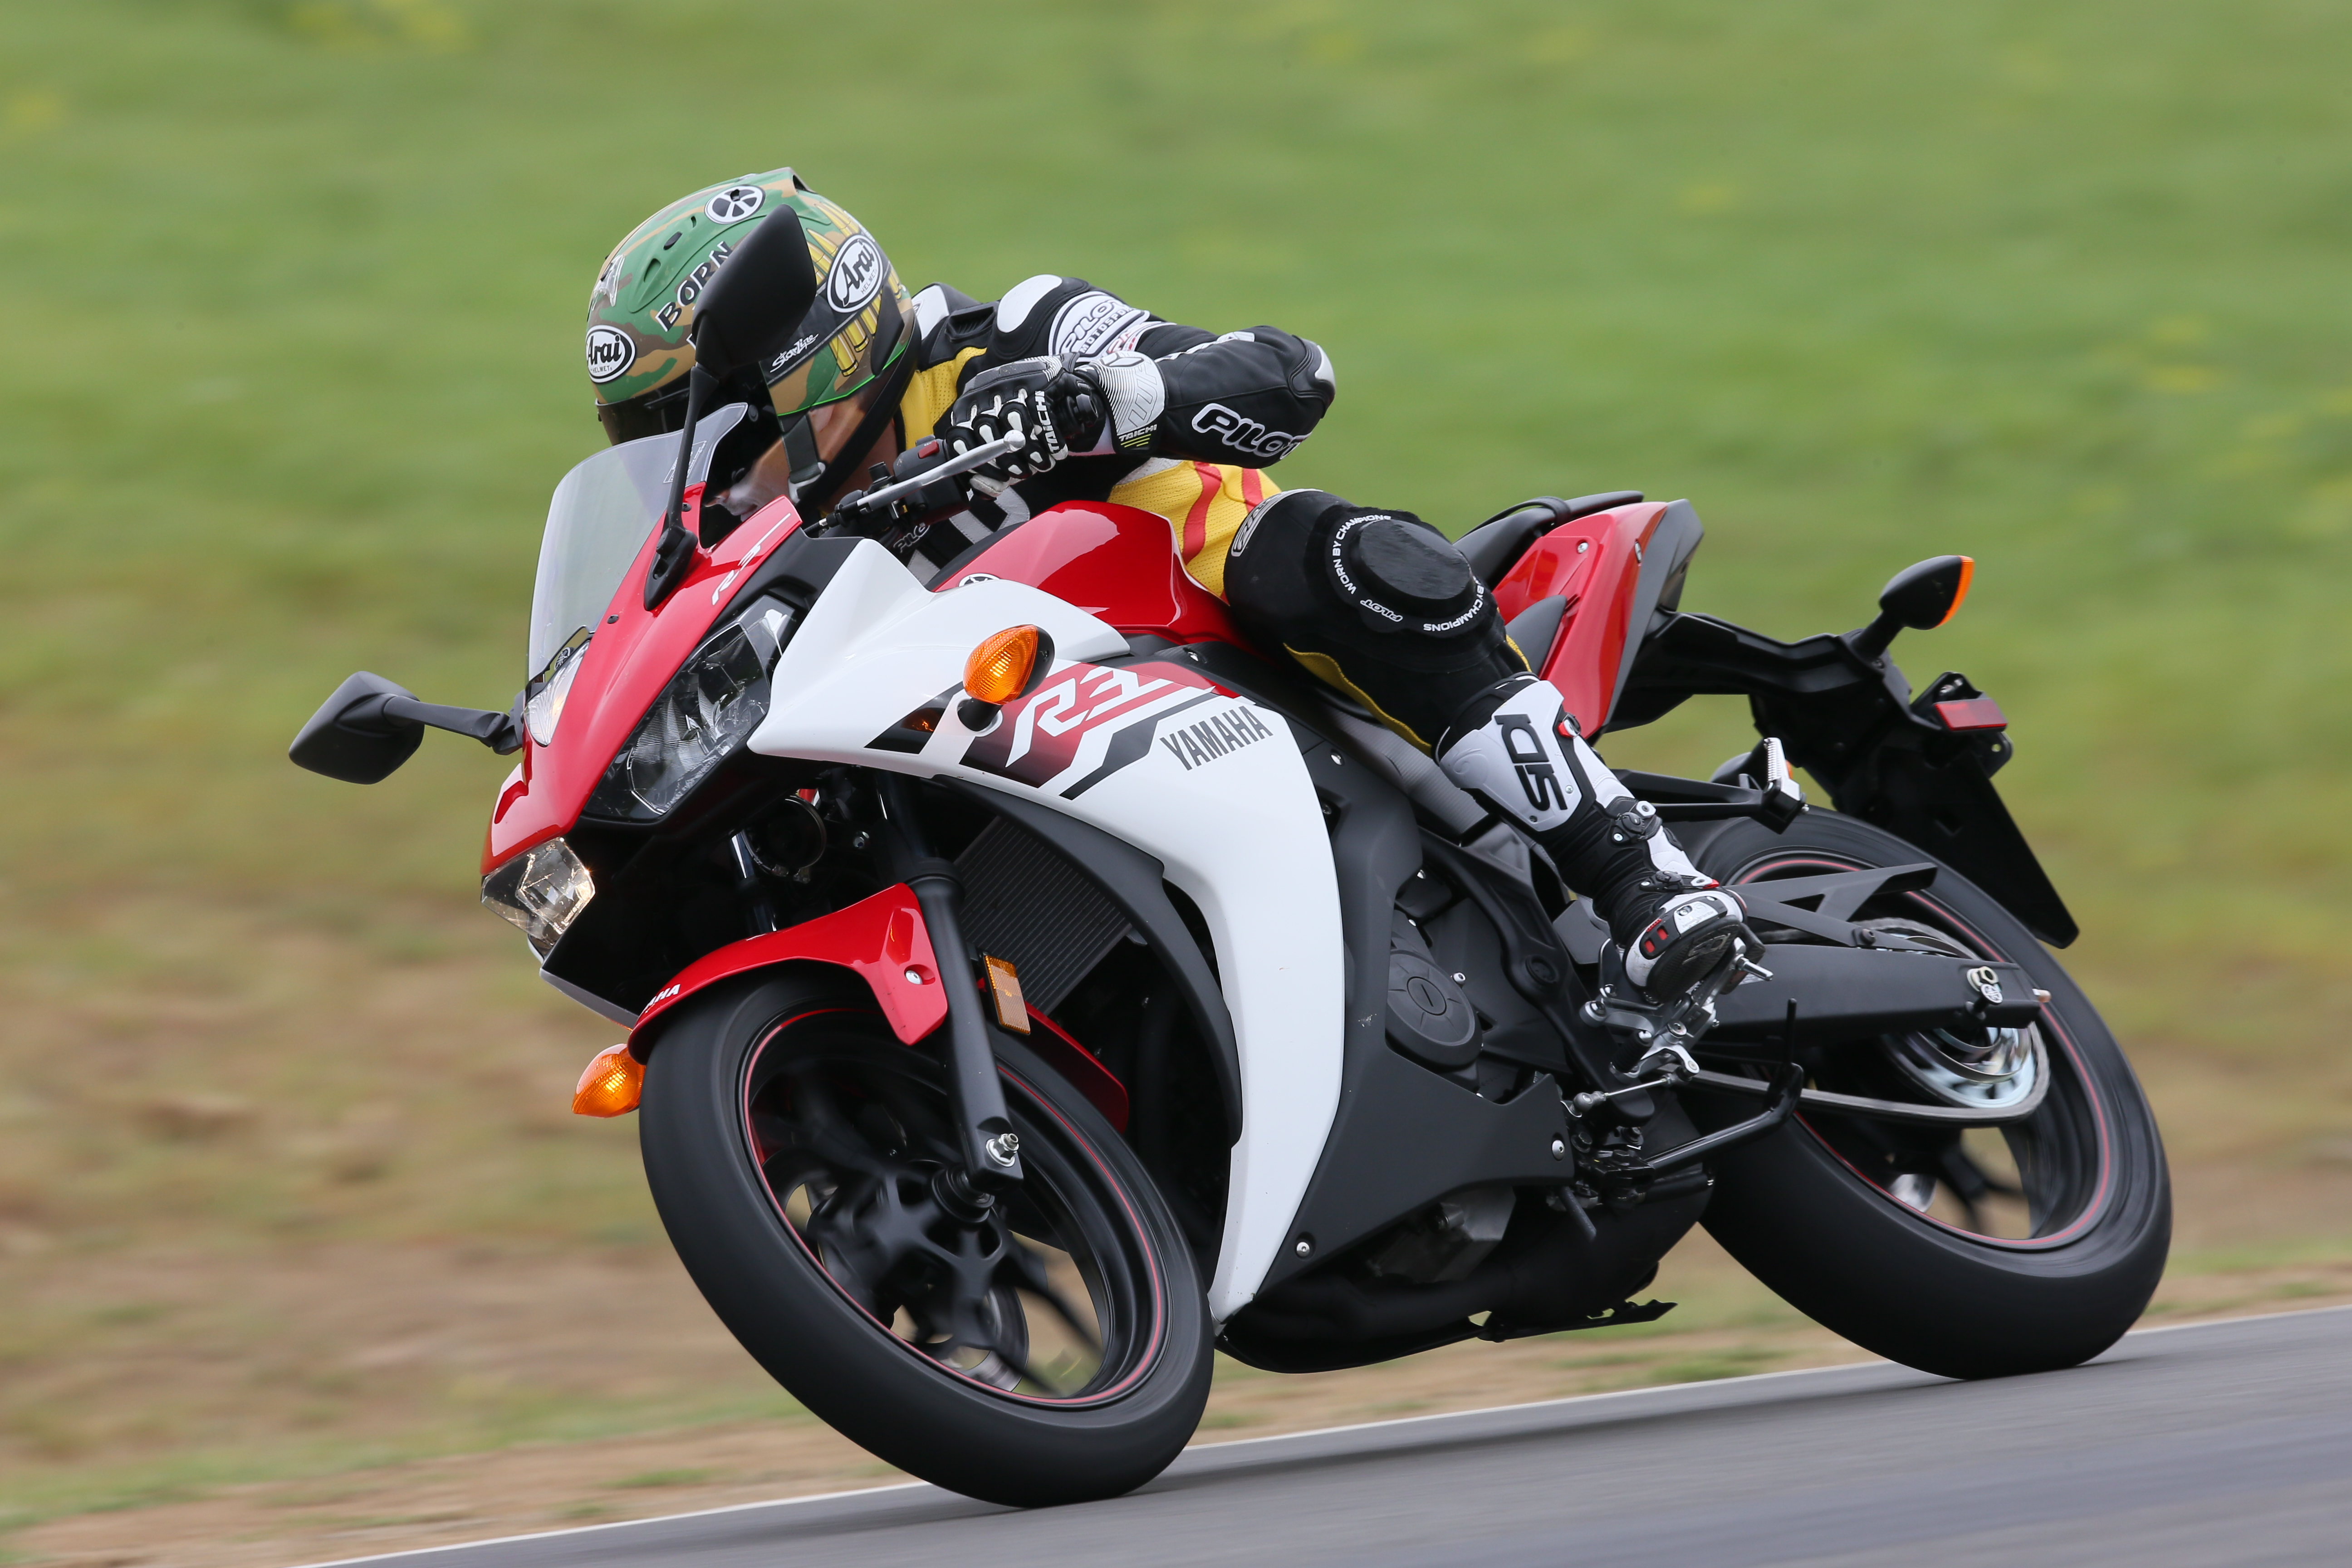 Update The Littlebig Bikes Are Coming Again: 2015 Yamaha YZF-R3 First Ride Review + Video